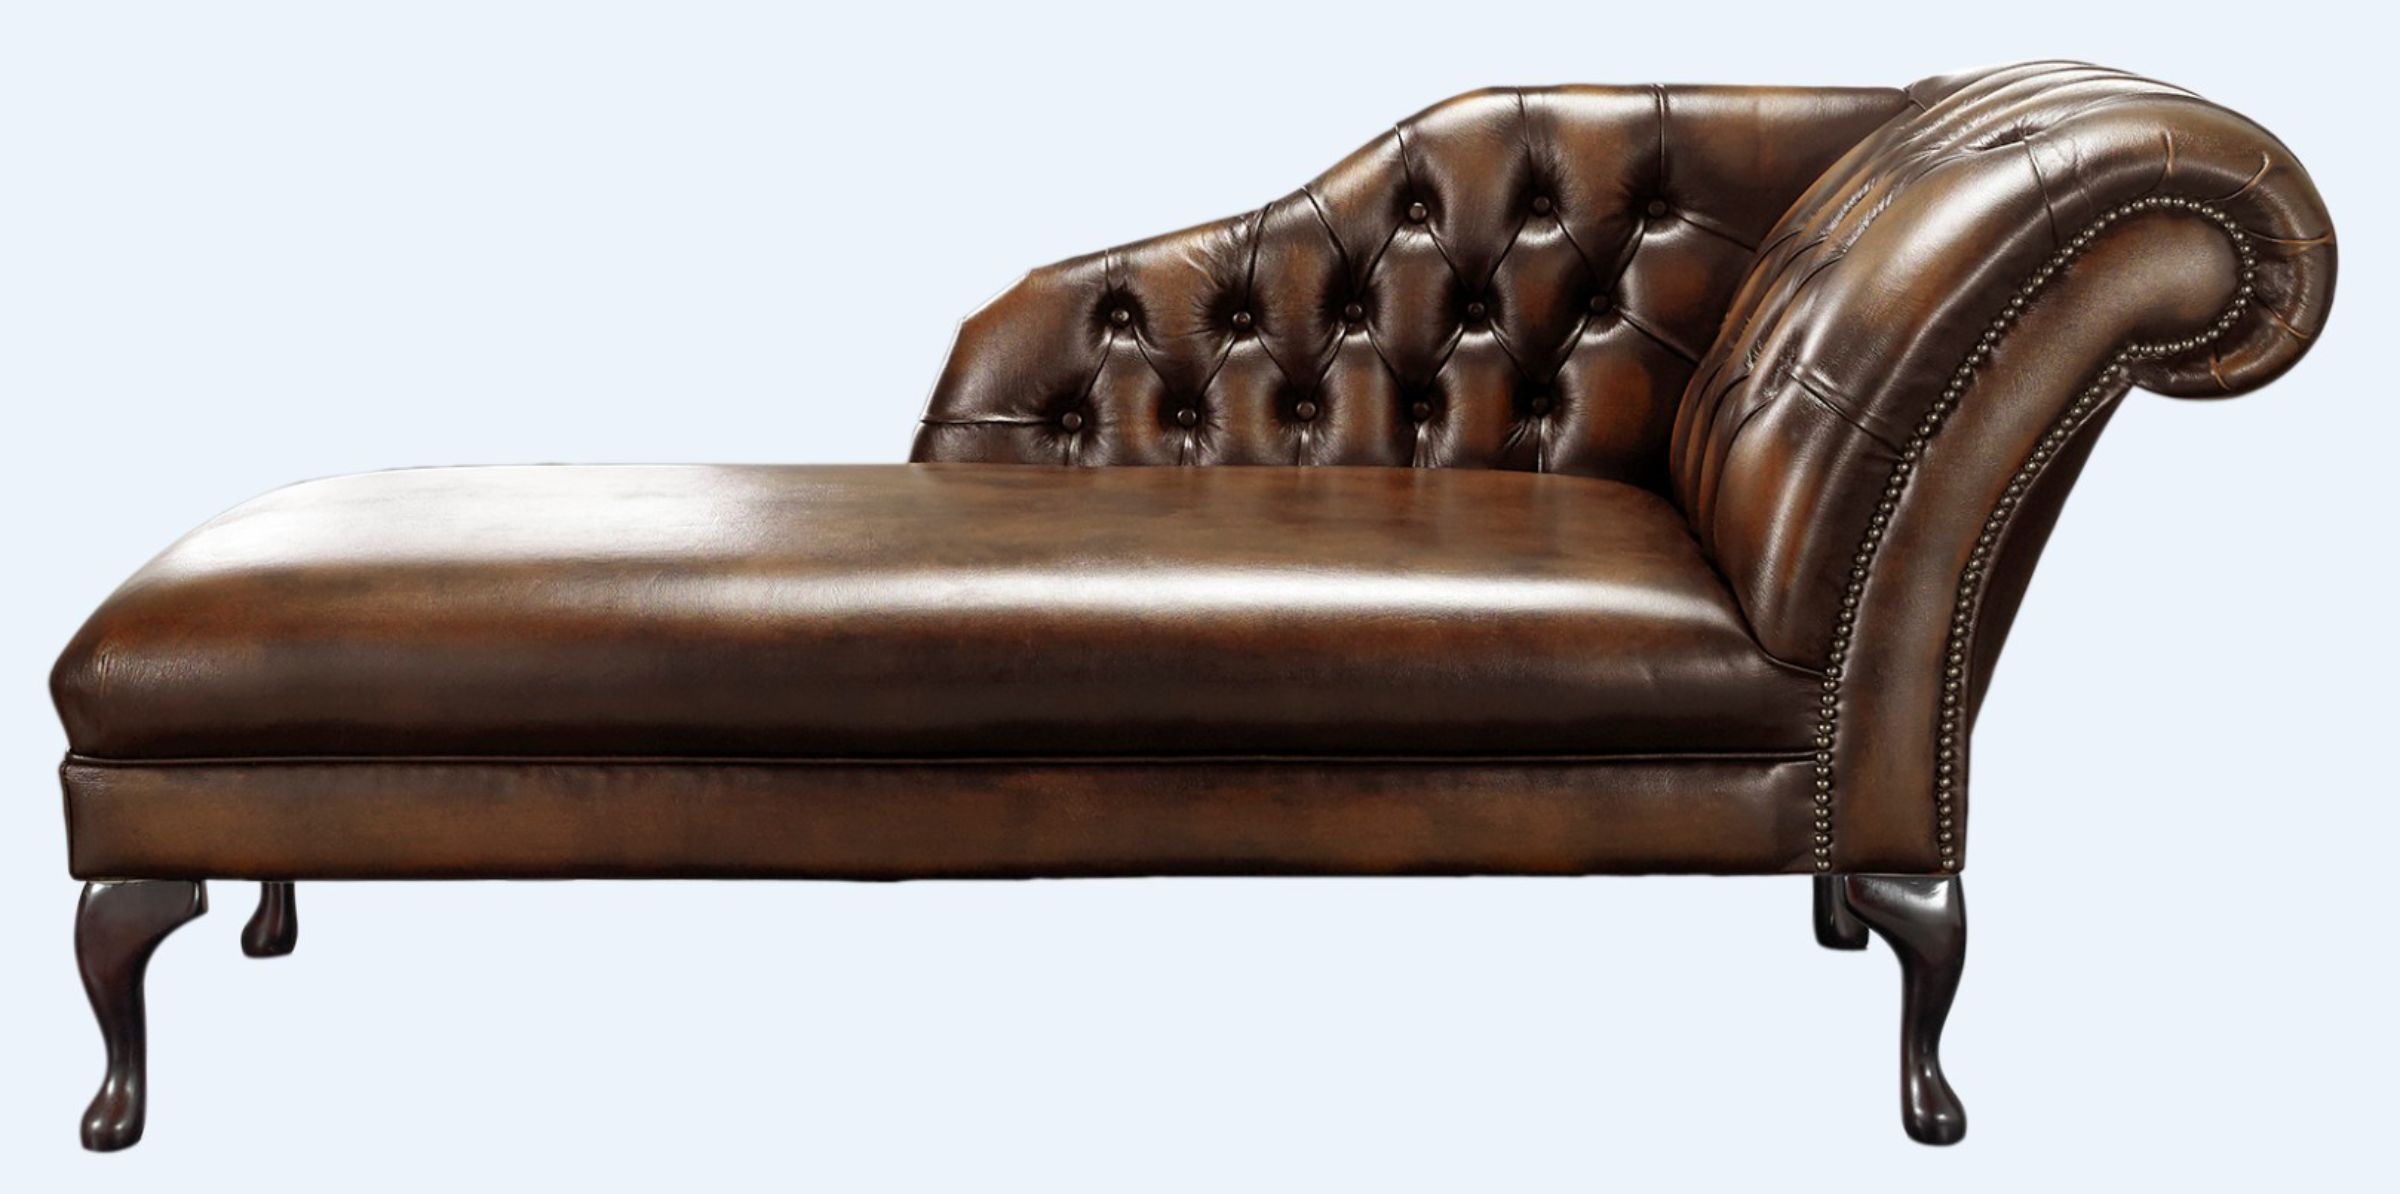 Autumn tan chesterfield chaise lounge day bed for Antique leather chaise